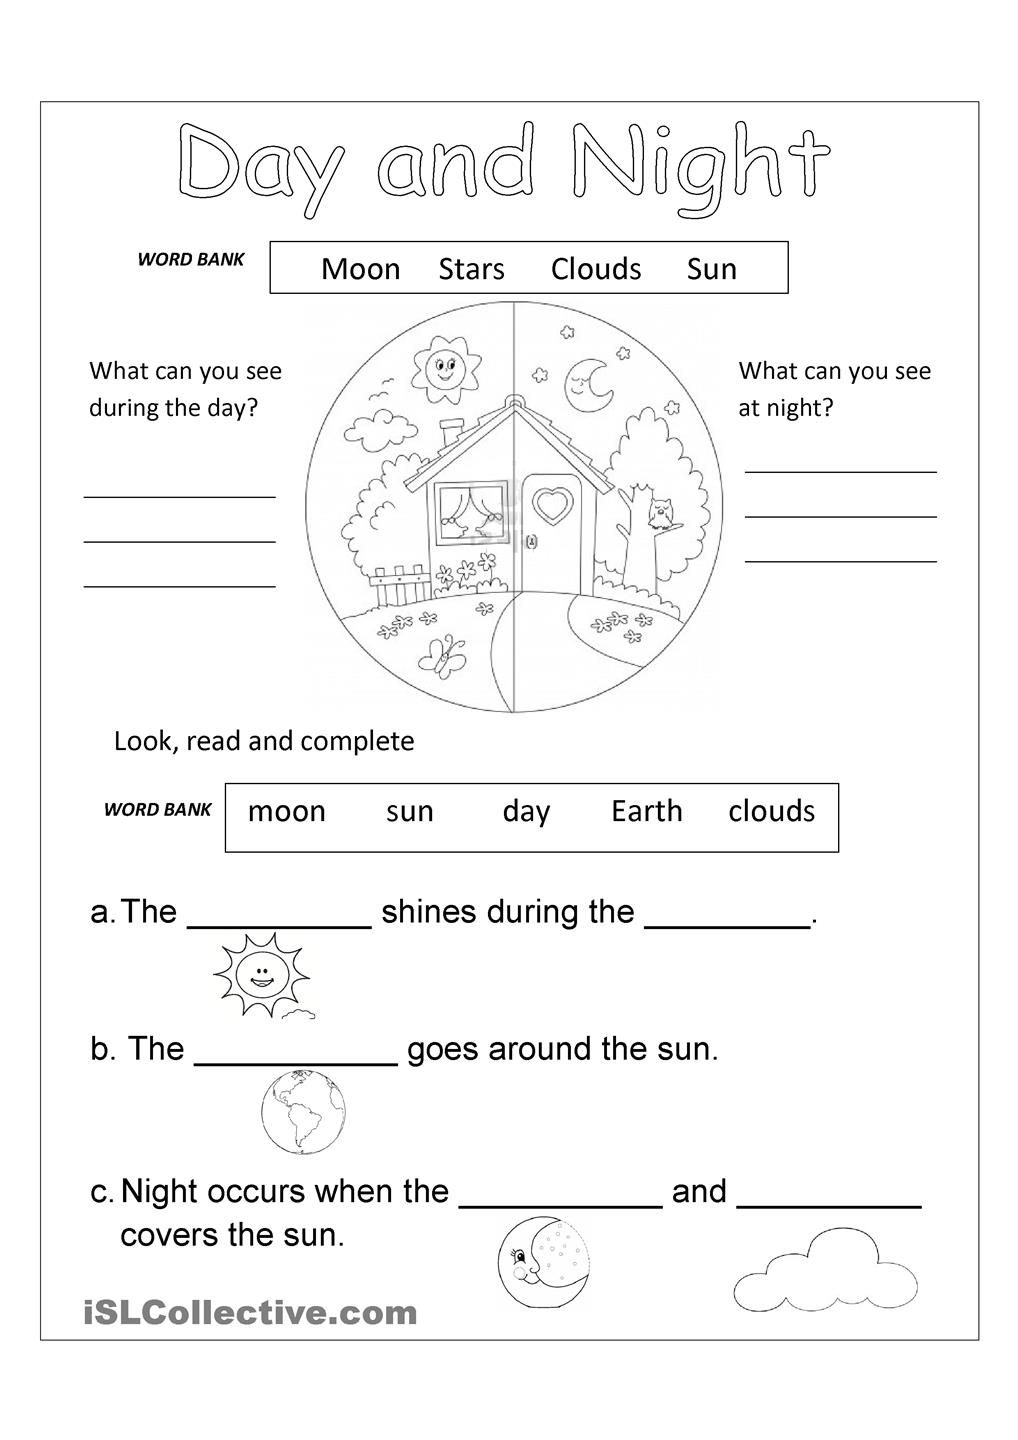 Day And Night Free Worksheet   School - New Science Standards   Day And Night Printable Worksheets